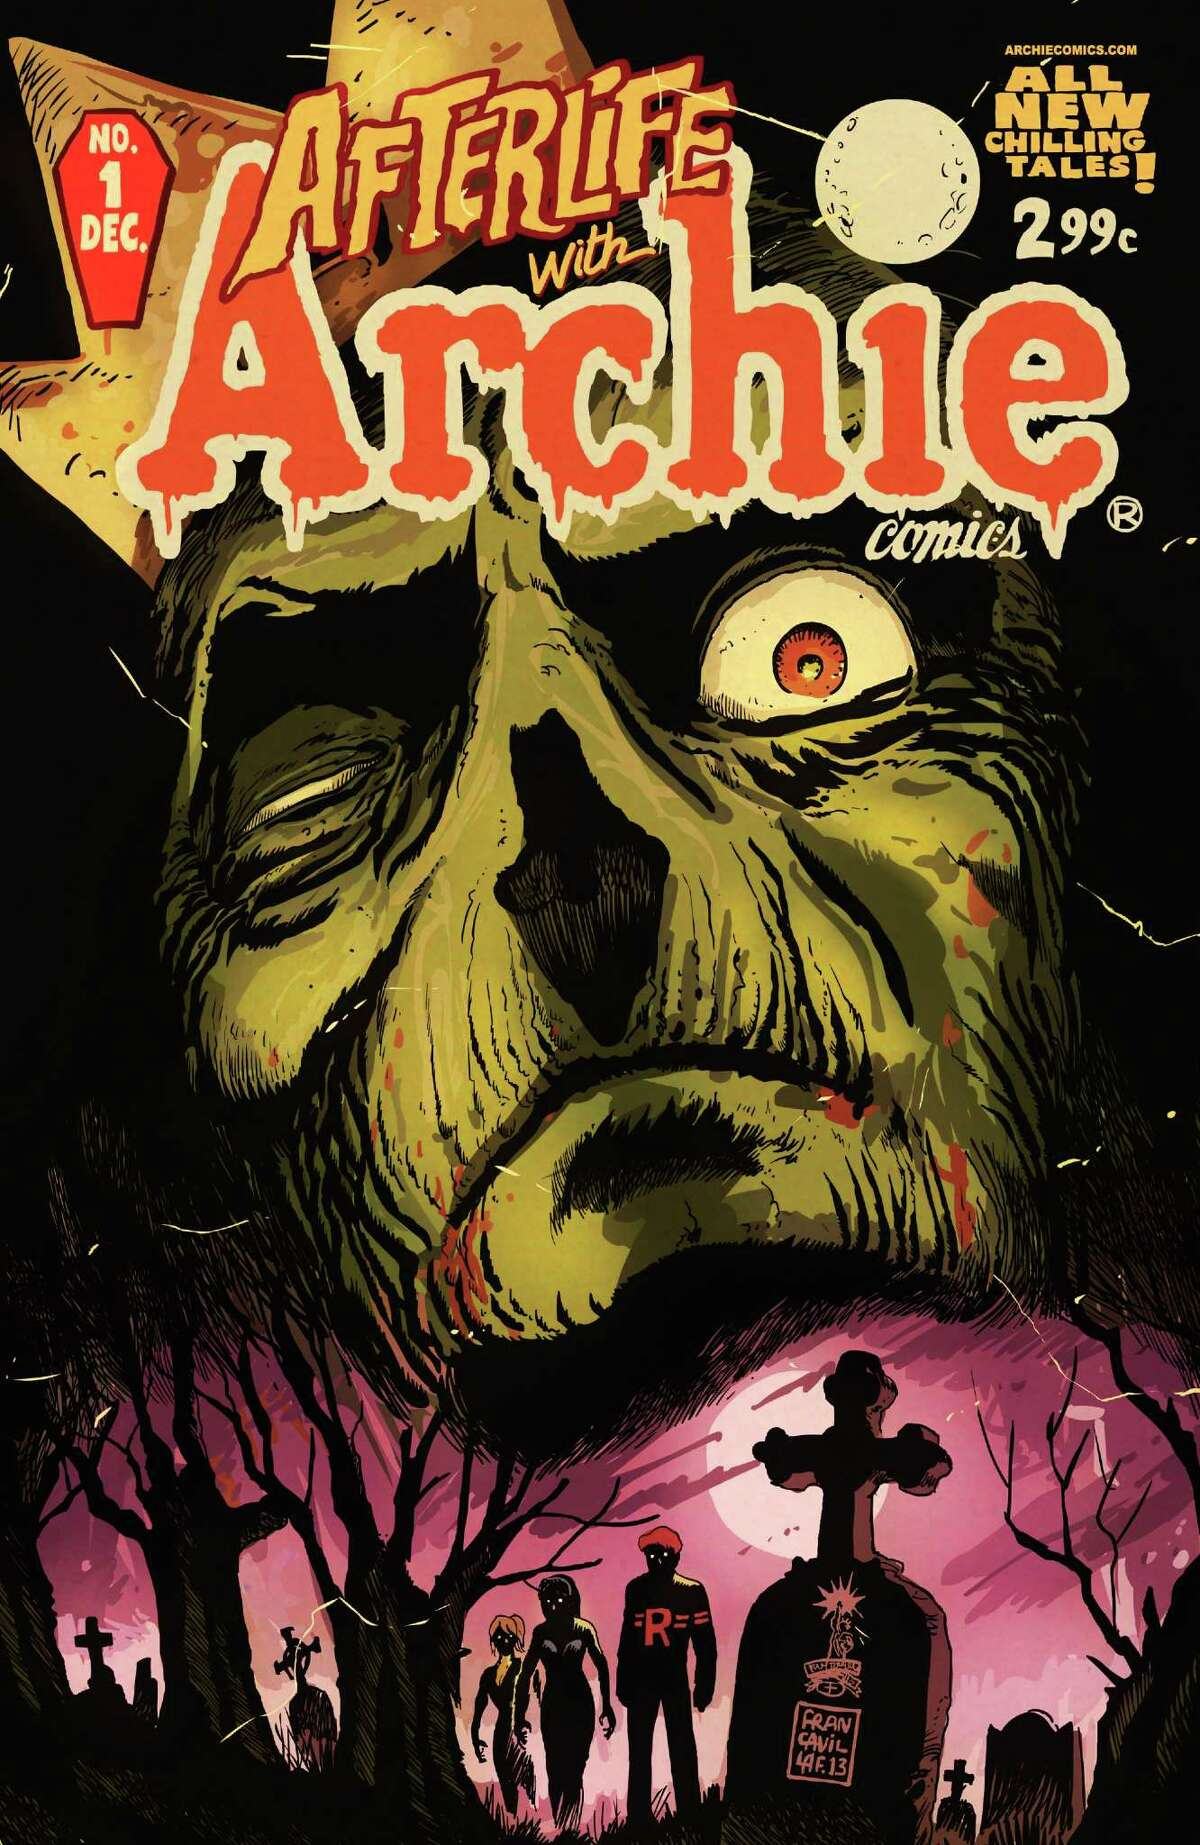 """""""Afterlife With Archie"""" sees Archie, Betty, Jughead, Veronica and others enveloped in a dark world."""